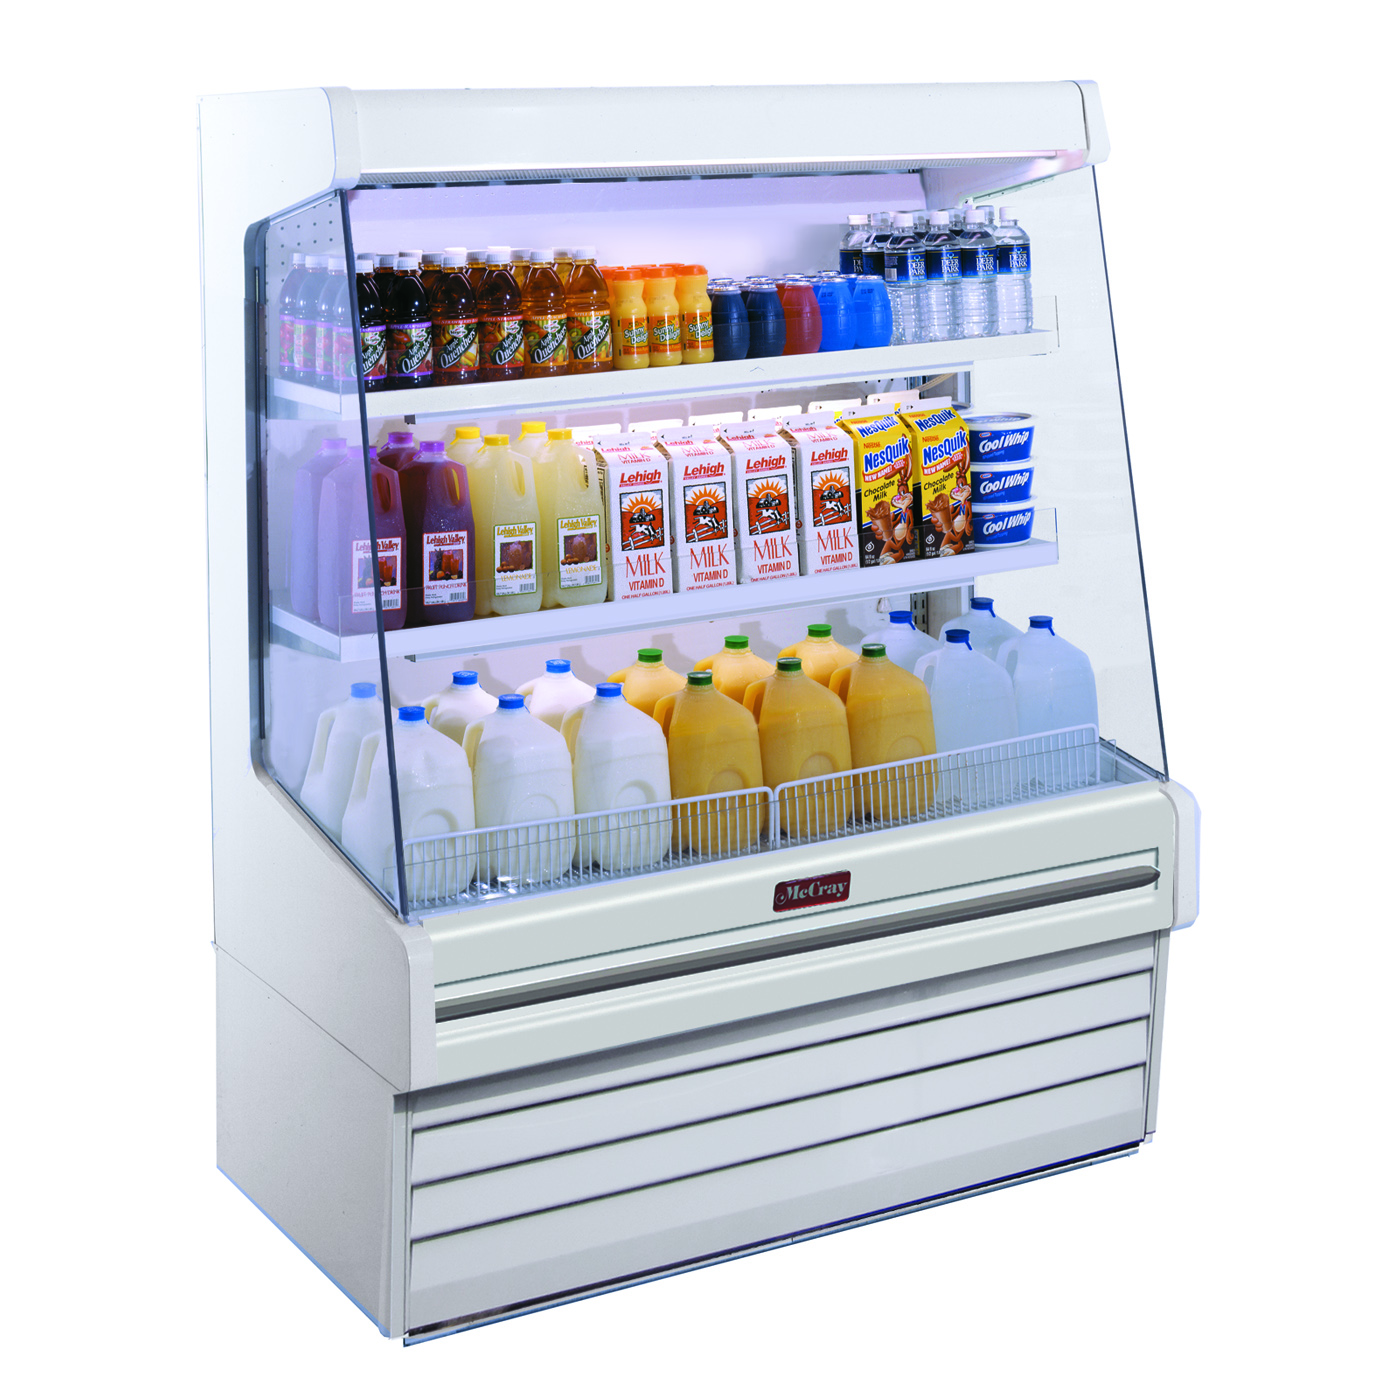 Howard-McCray R-OD30E-5L-LED merchandiser, open refrigerated display